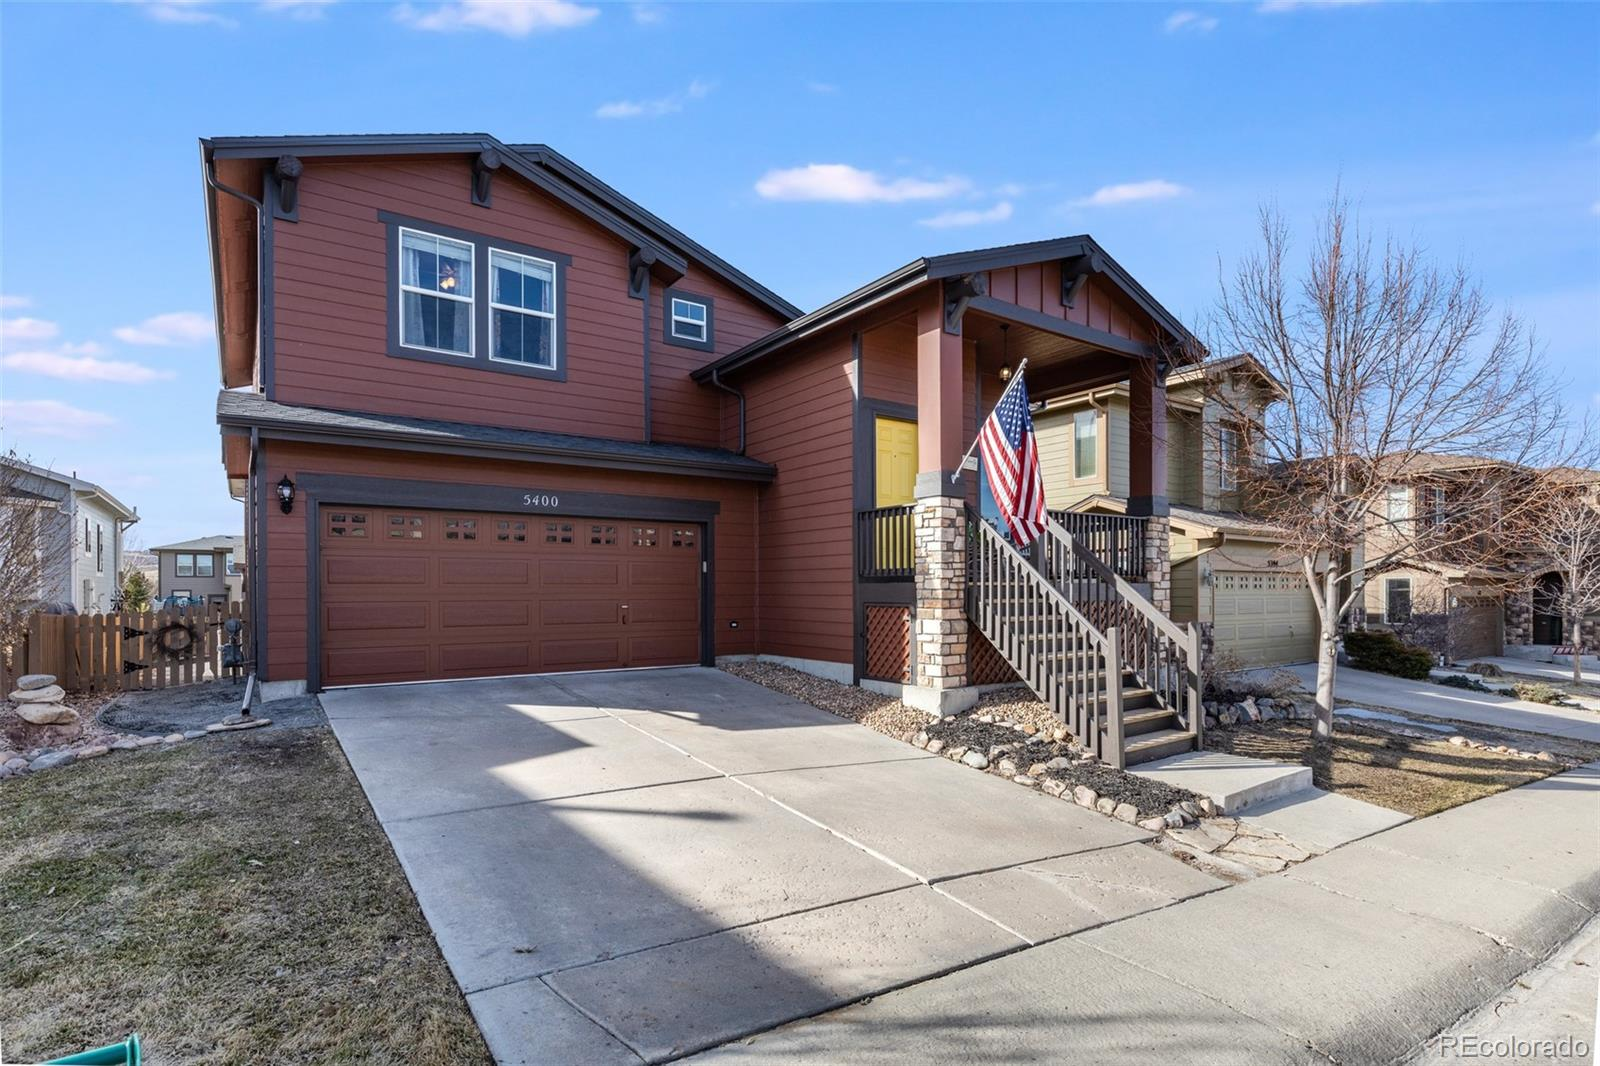 MLS# 4839860 - 3 - 5400 Fullerton Circle, Highlands Ranch, CO 80130